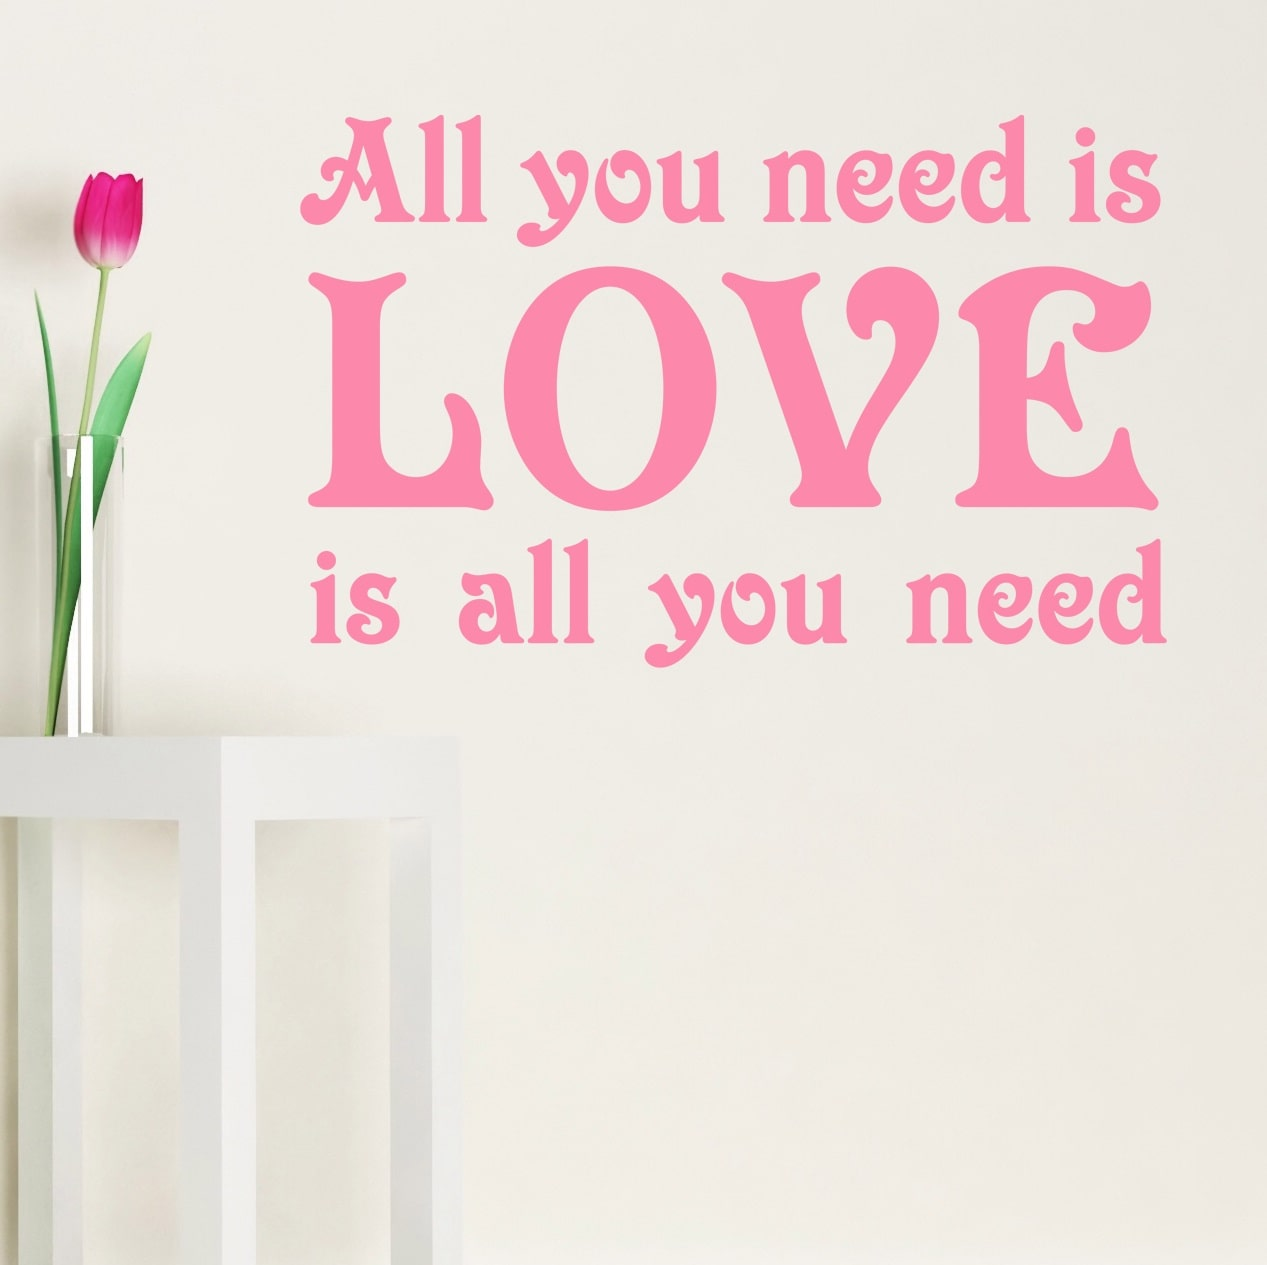 all you need is love wallsticker fra nicewall dk